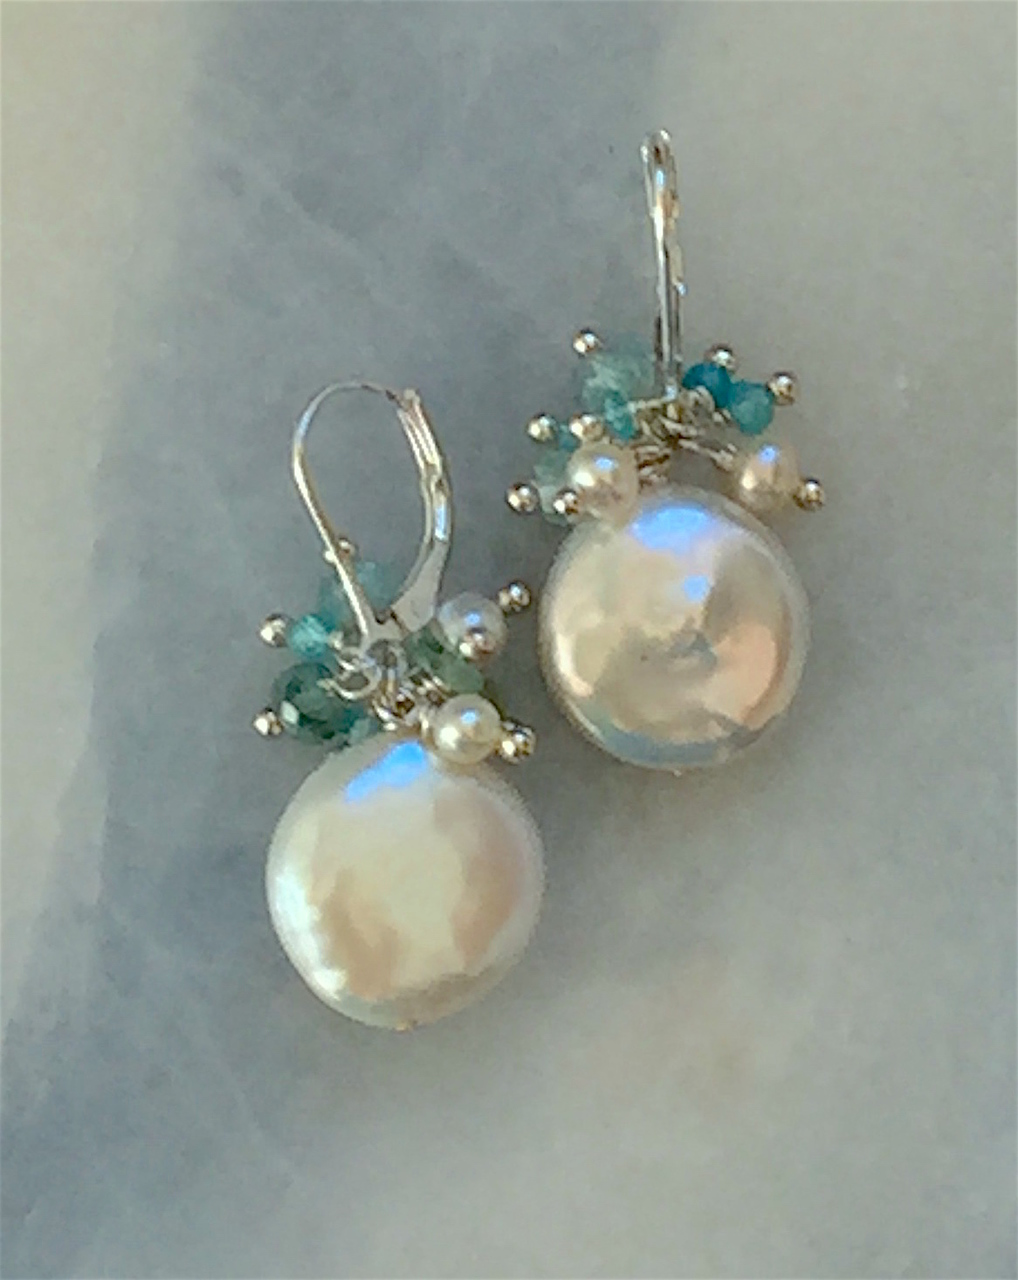 jewelry and larimar creations cloud galleries pearl with gemstone apatite drop earrings accents white blue handcrafted